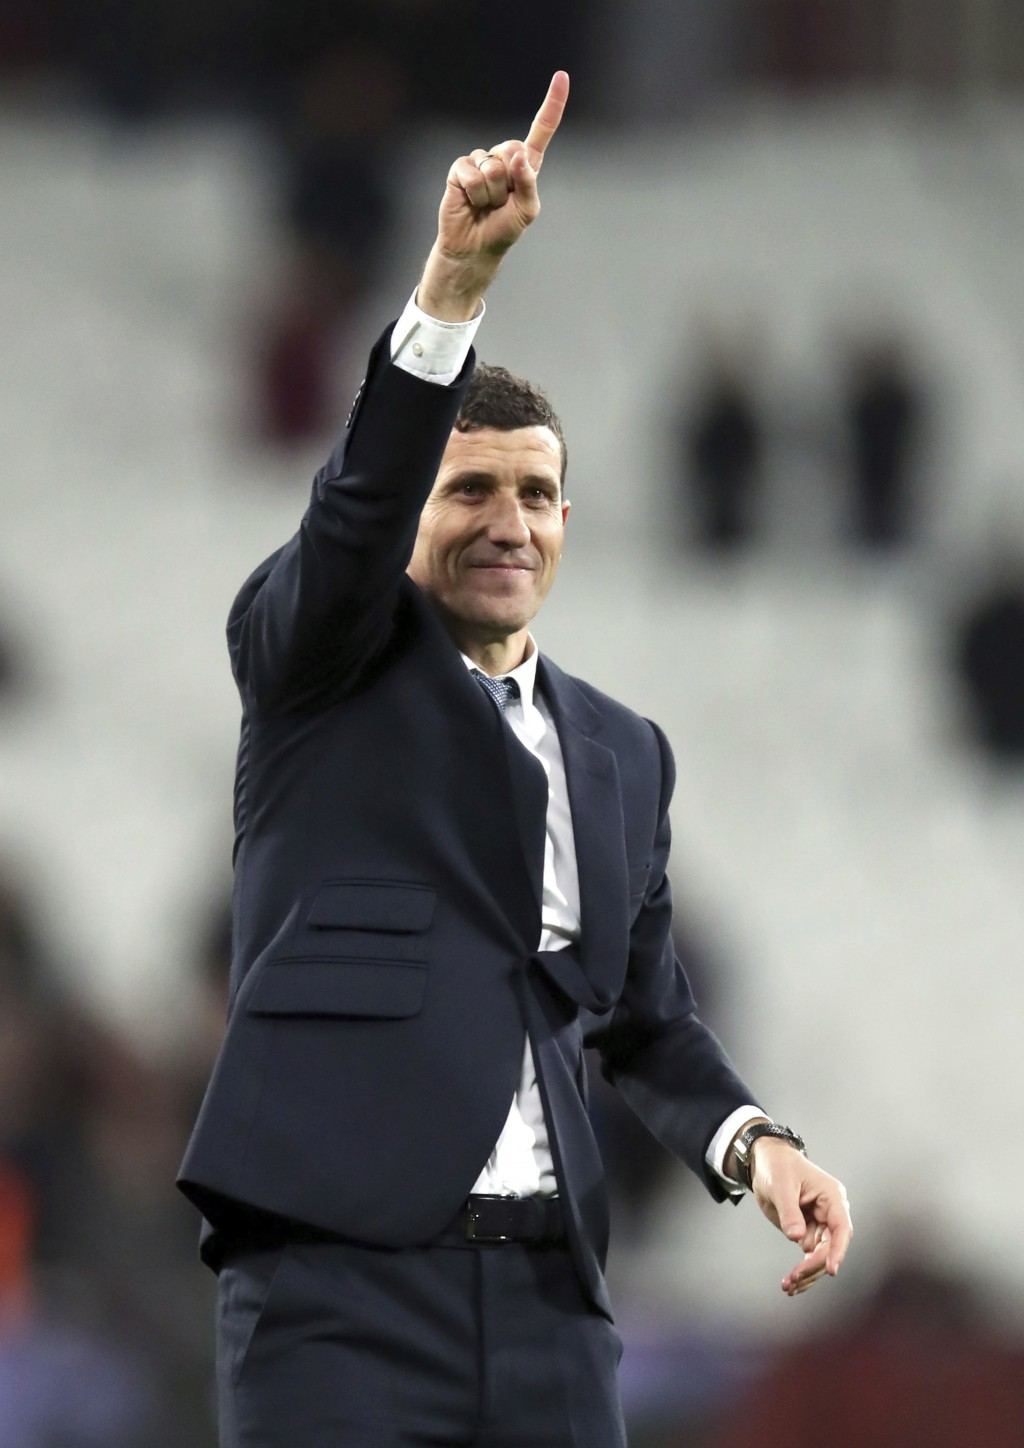 Watford manager Javi Gracia acknowledges the fans after the Premier League match at London Stadium Saturday, December 22, 2018.  (Chris Radburn/PA via